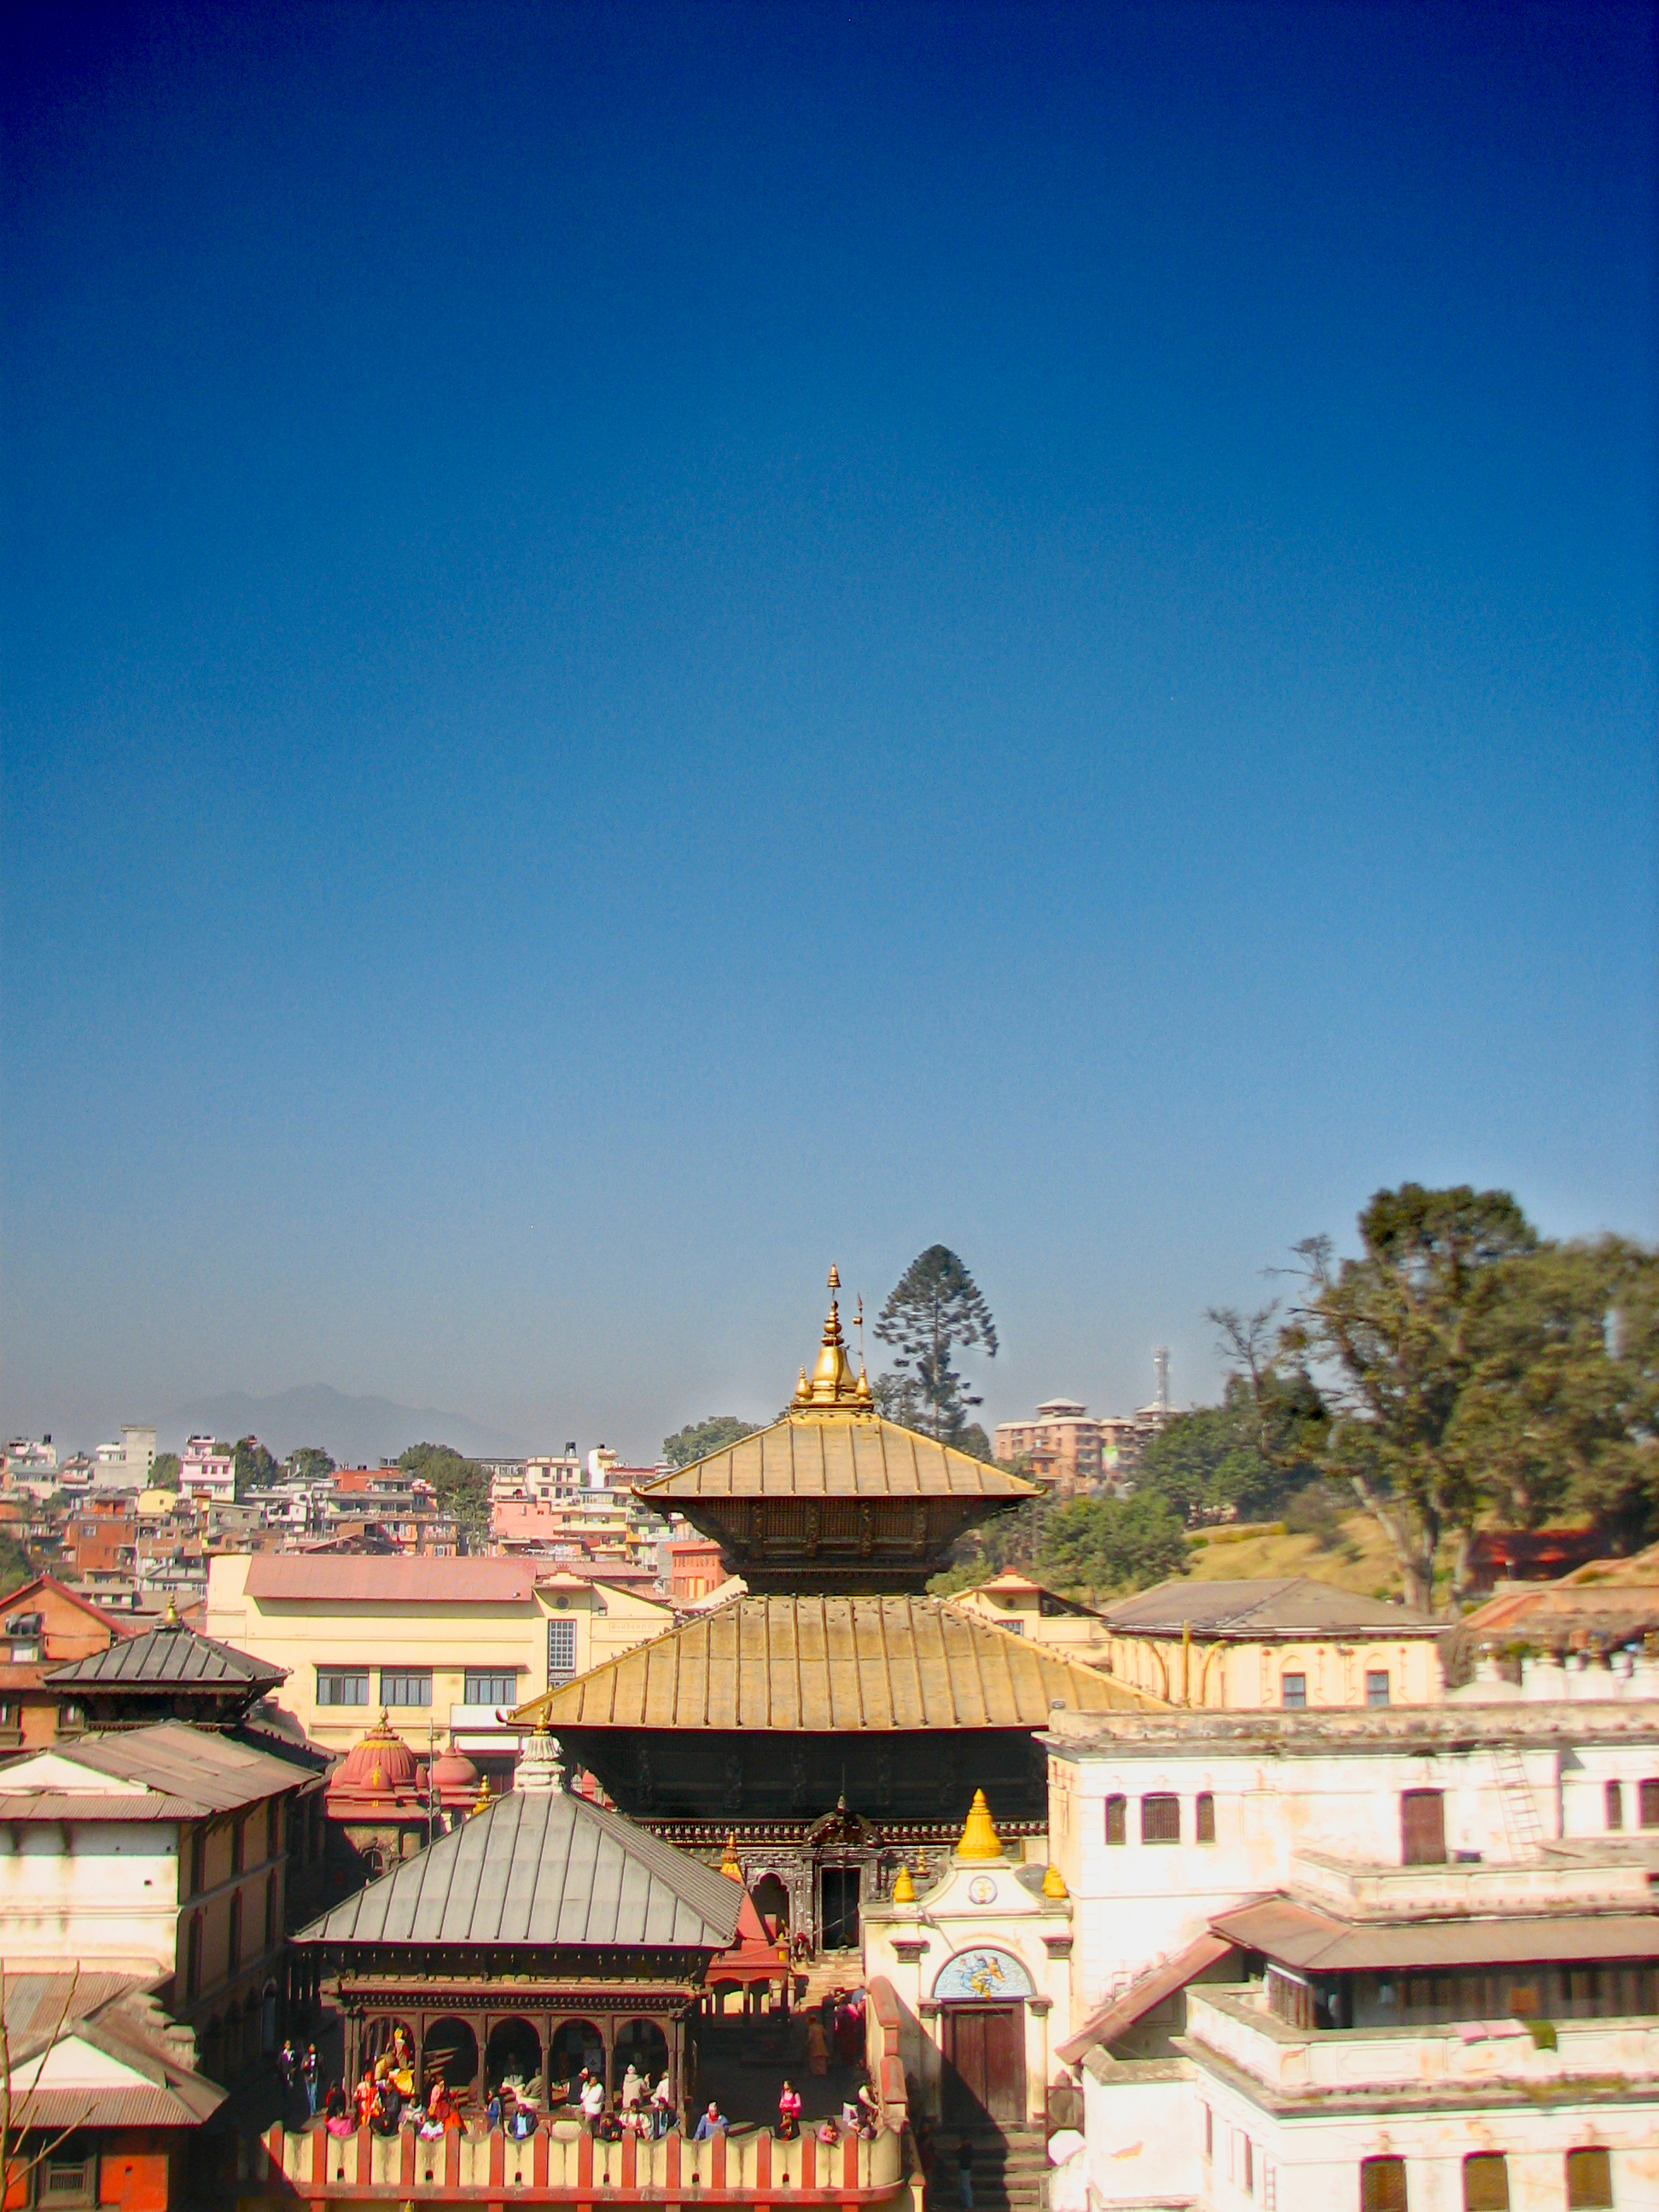 pashupatinath temple free - photo #14